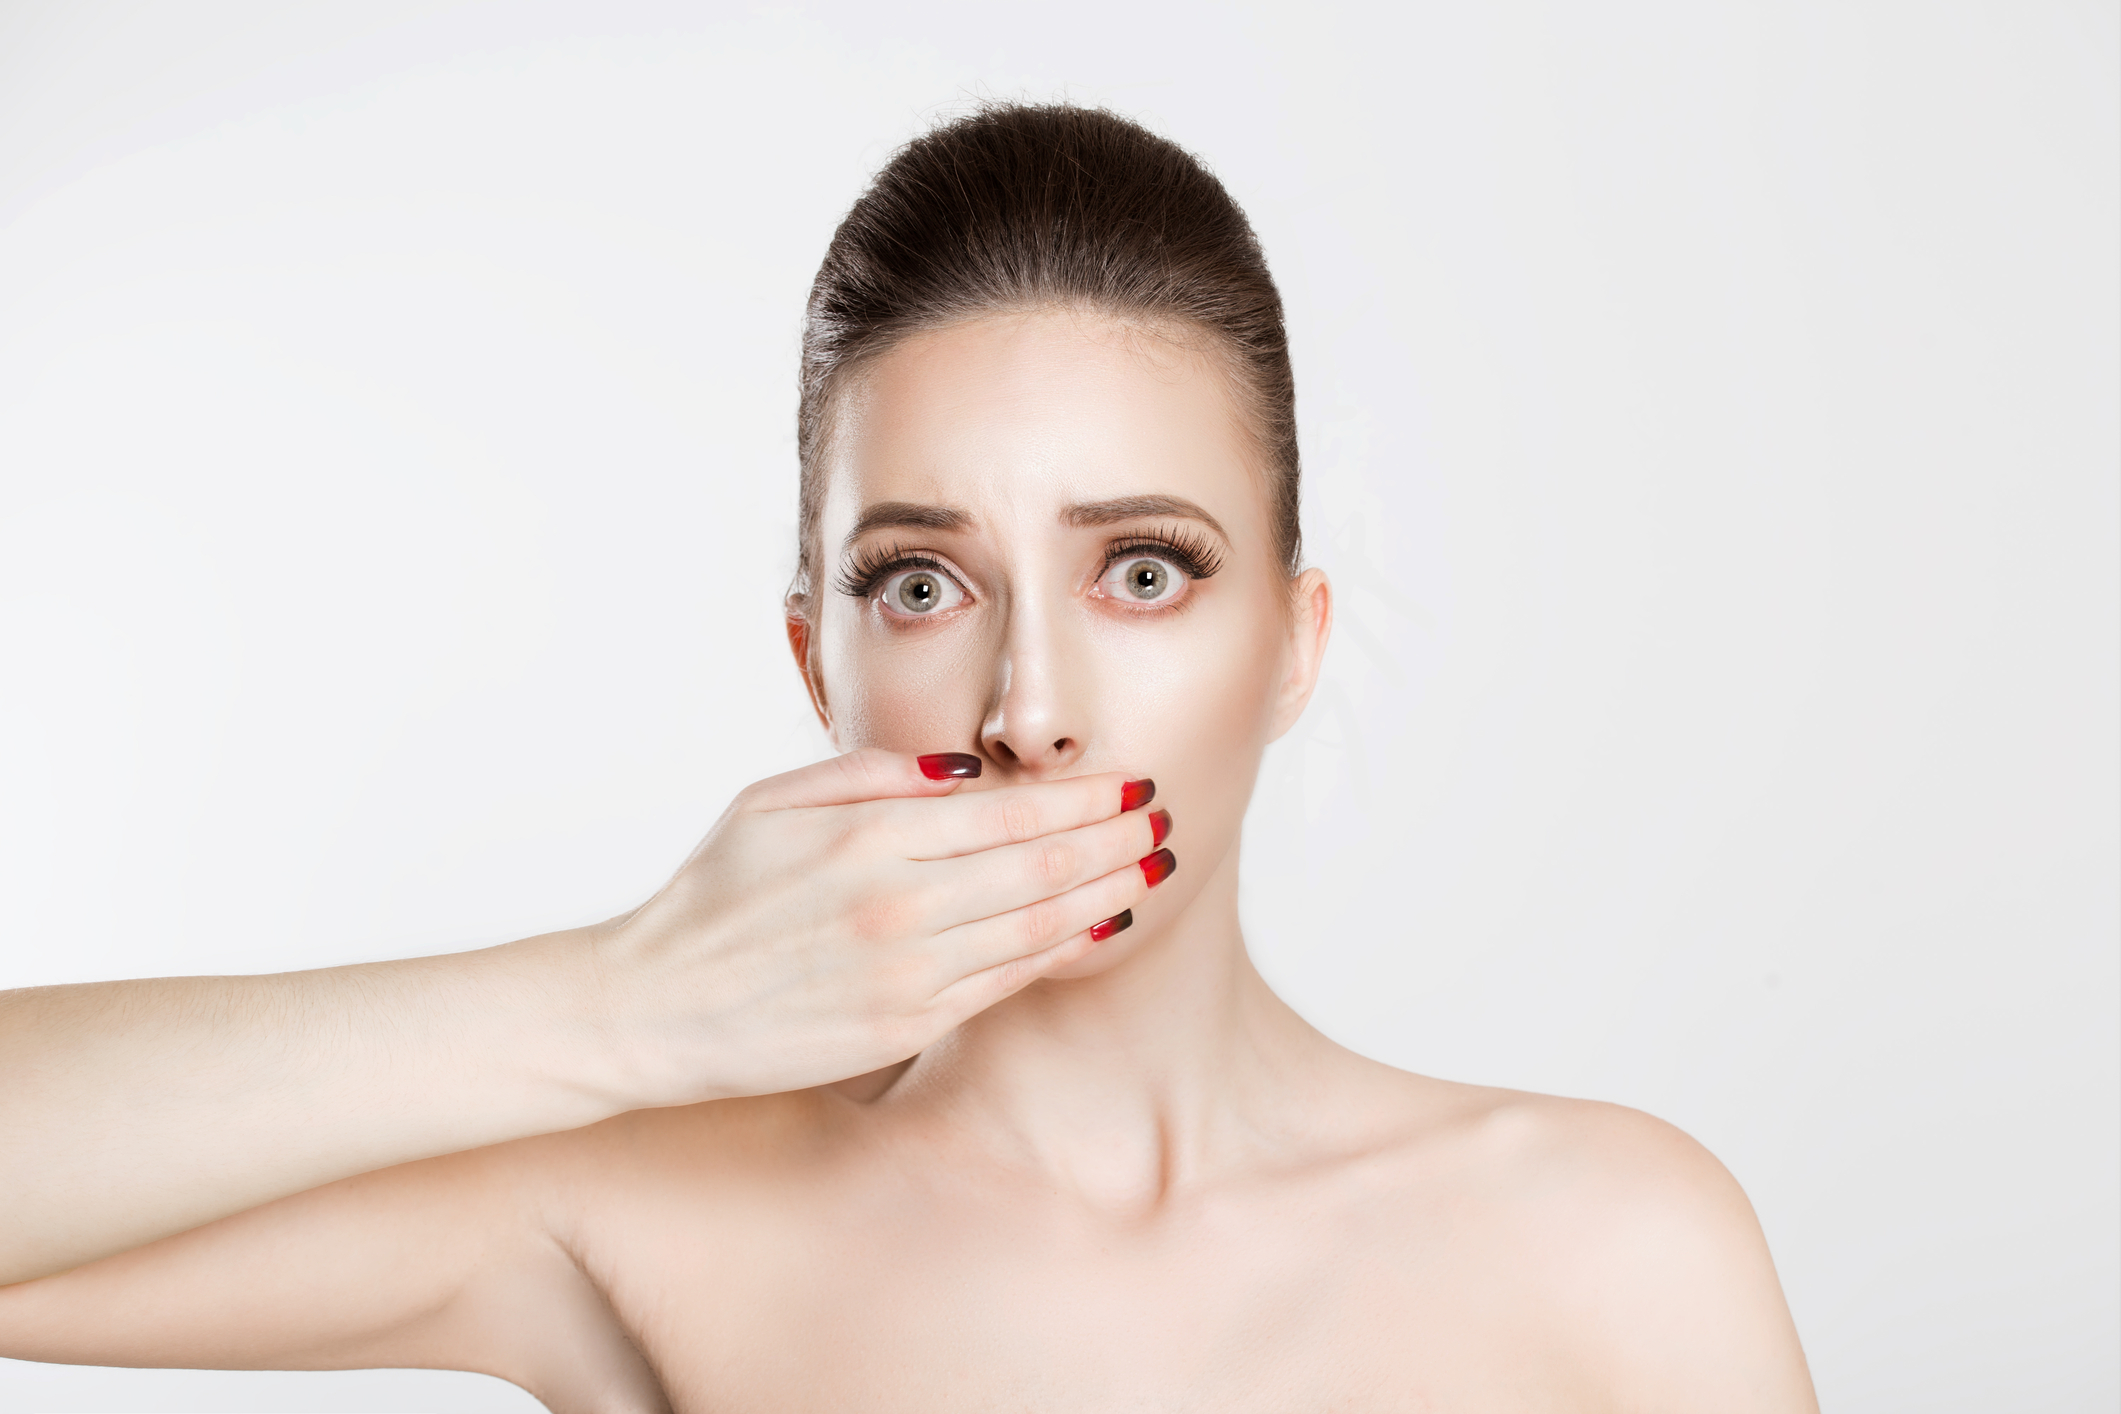 No talking by actors getting makeup and hair or styled due to Covid-19 dangers